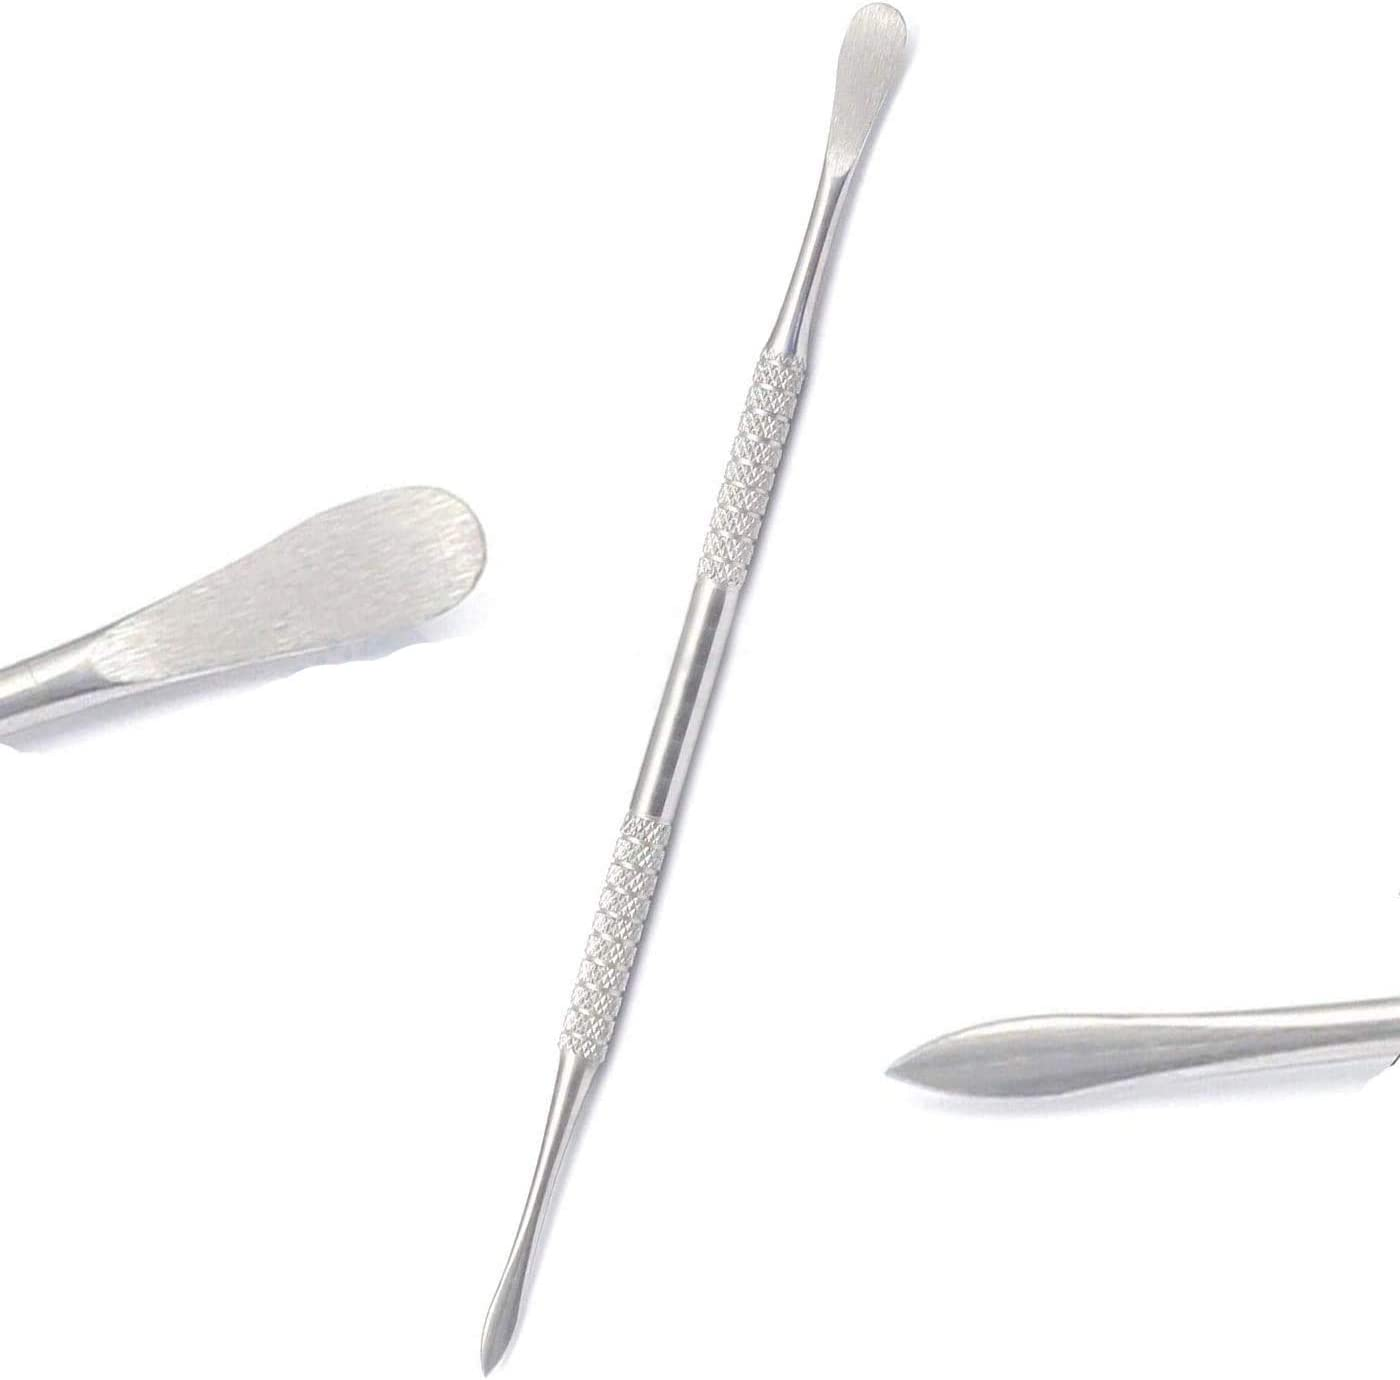 OdontoMed2011 Stainless Steel Double-Sided Hook /& Angled Pick Wax /& Clay Sculpting Tool